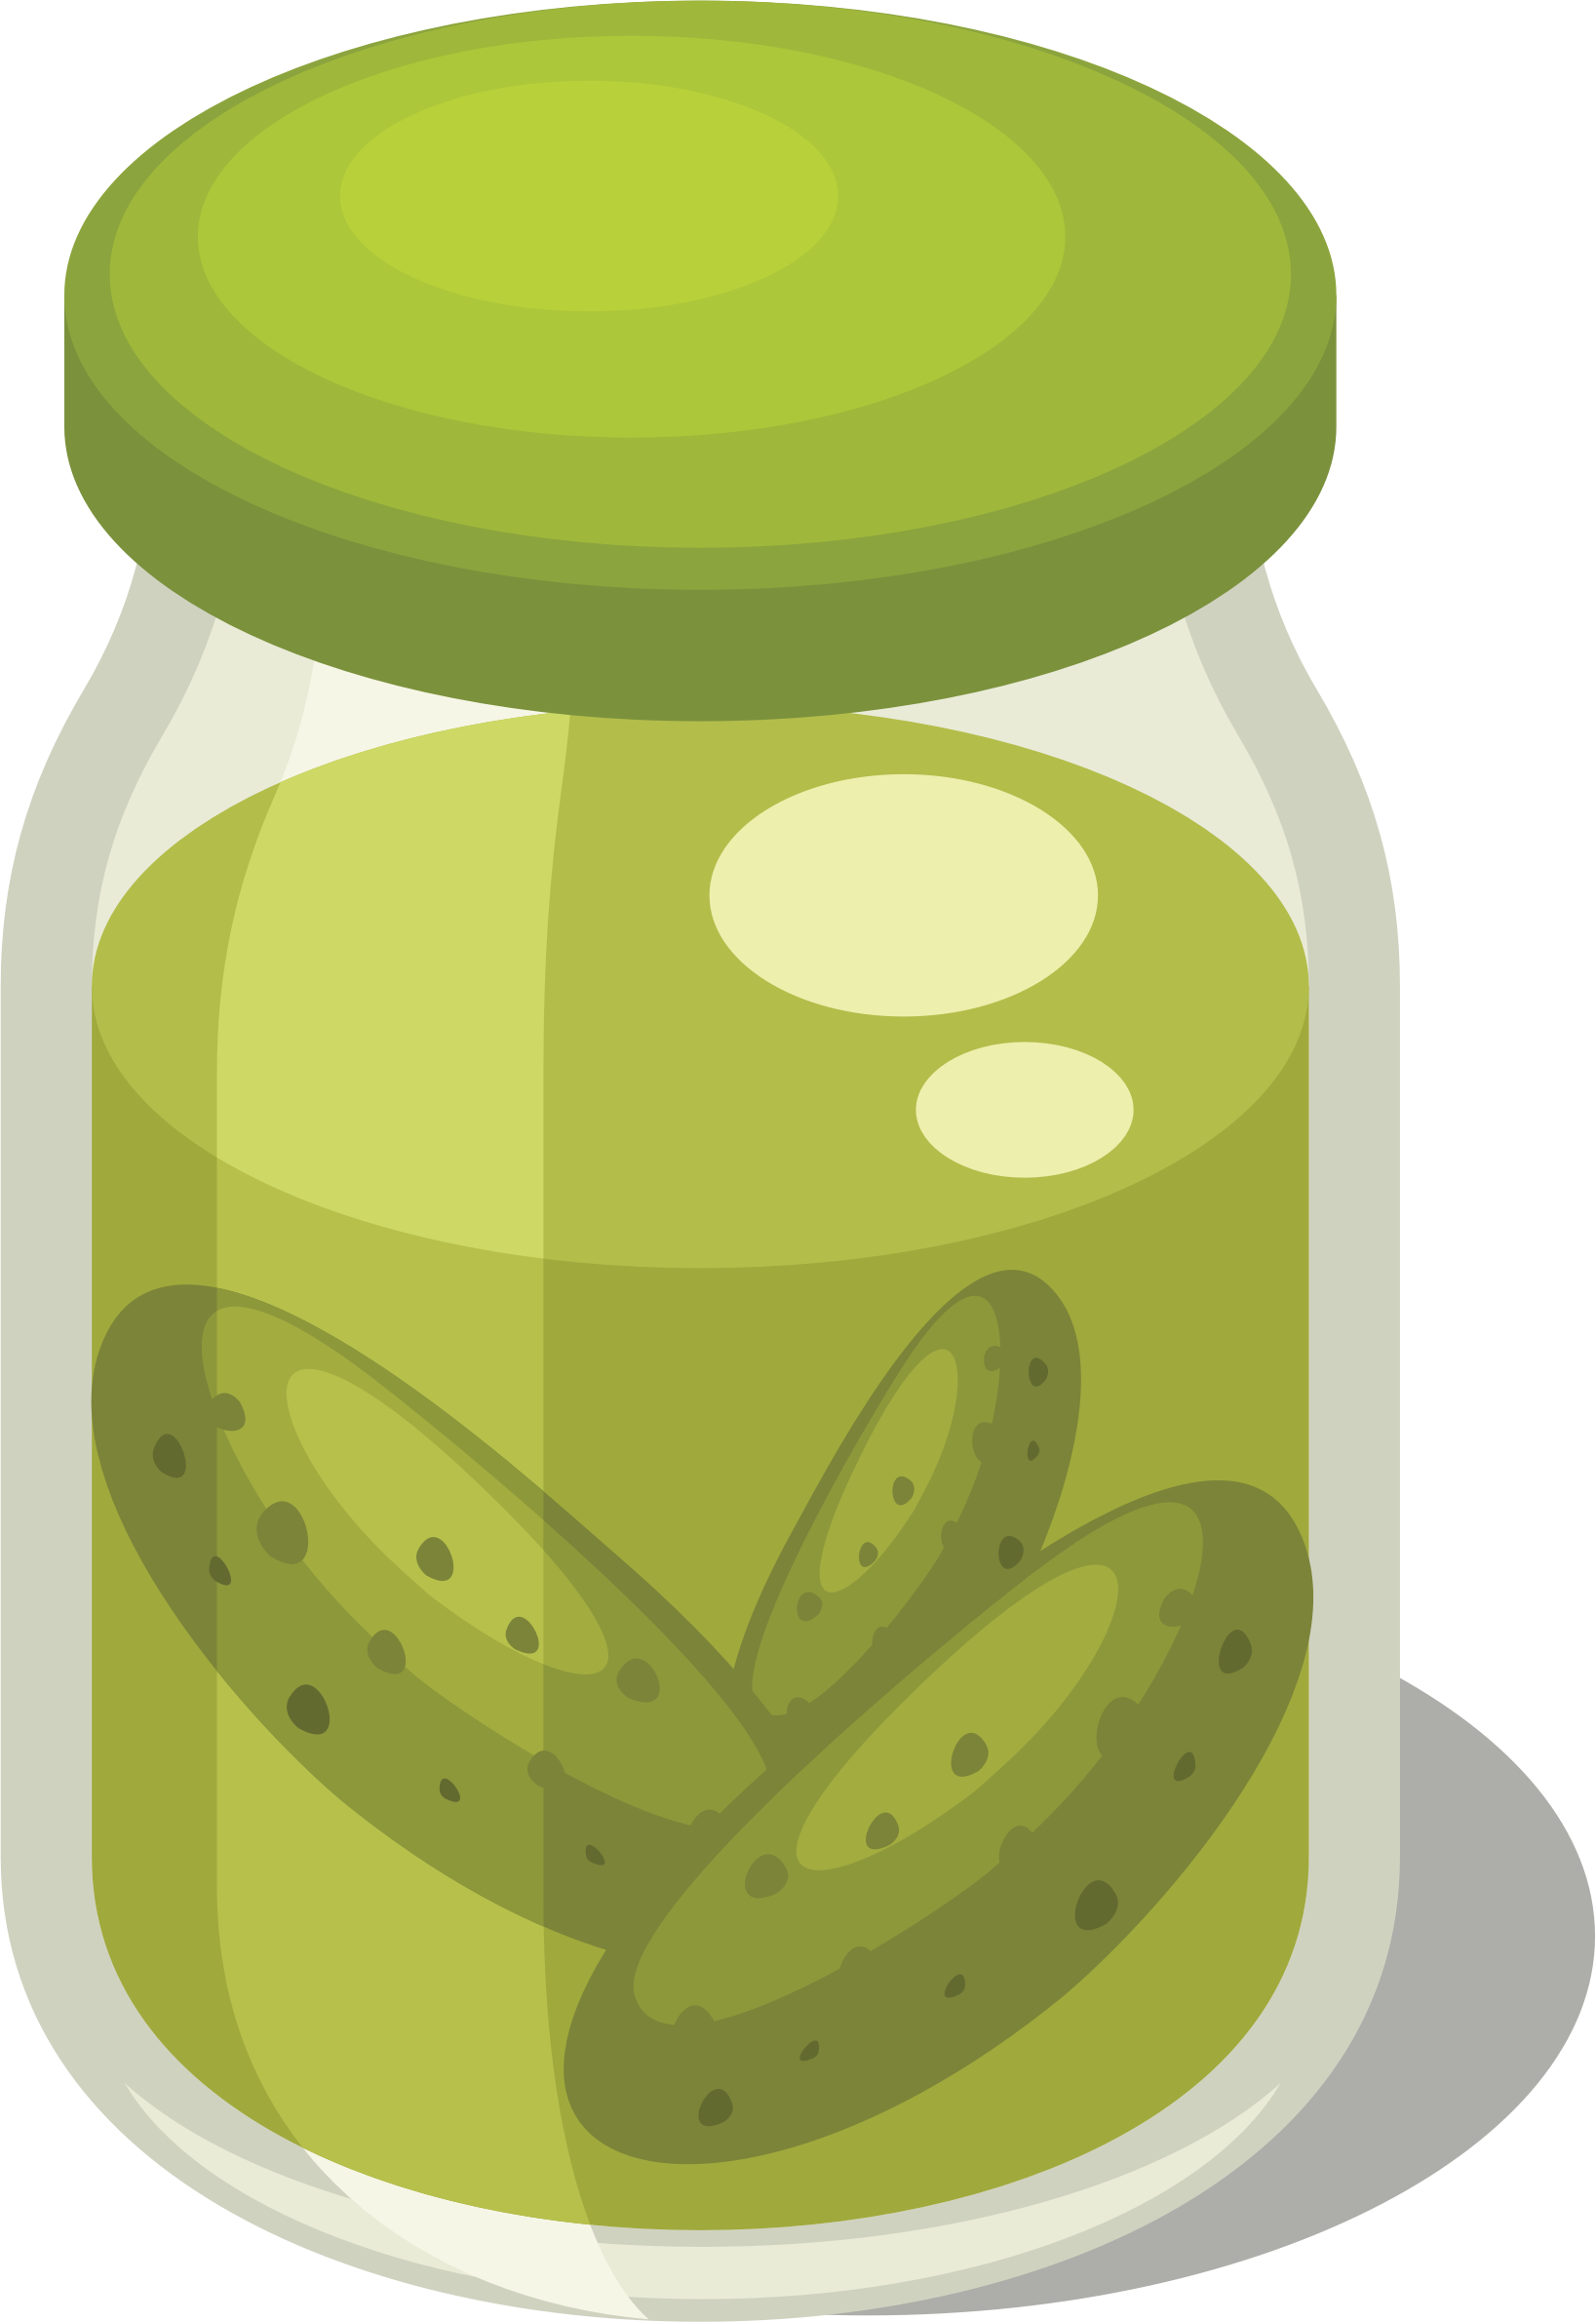 Pickles by oksmith